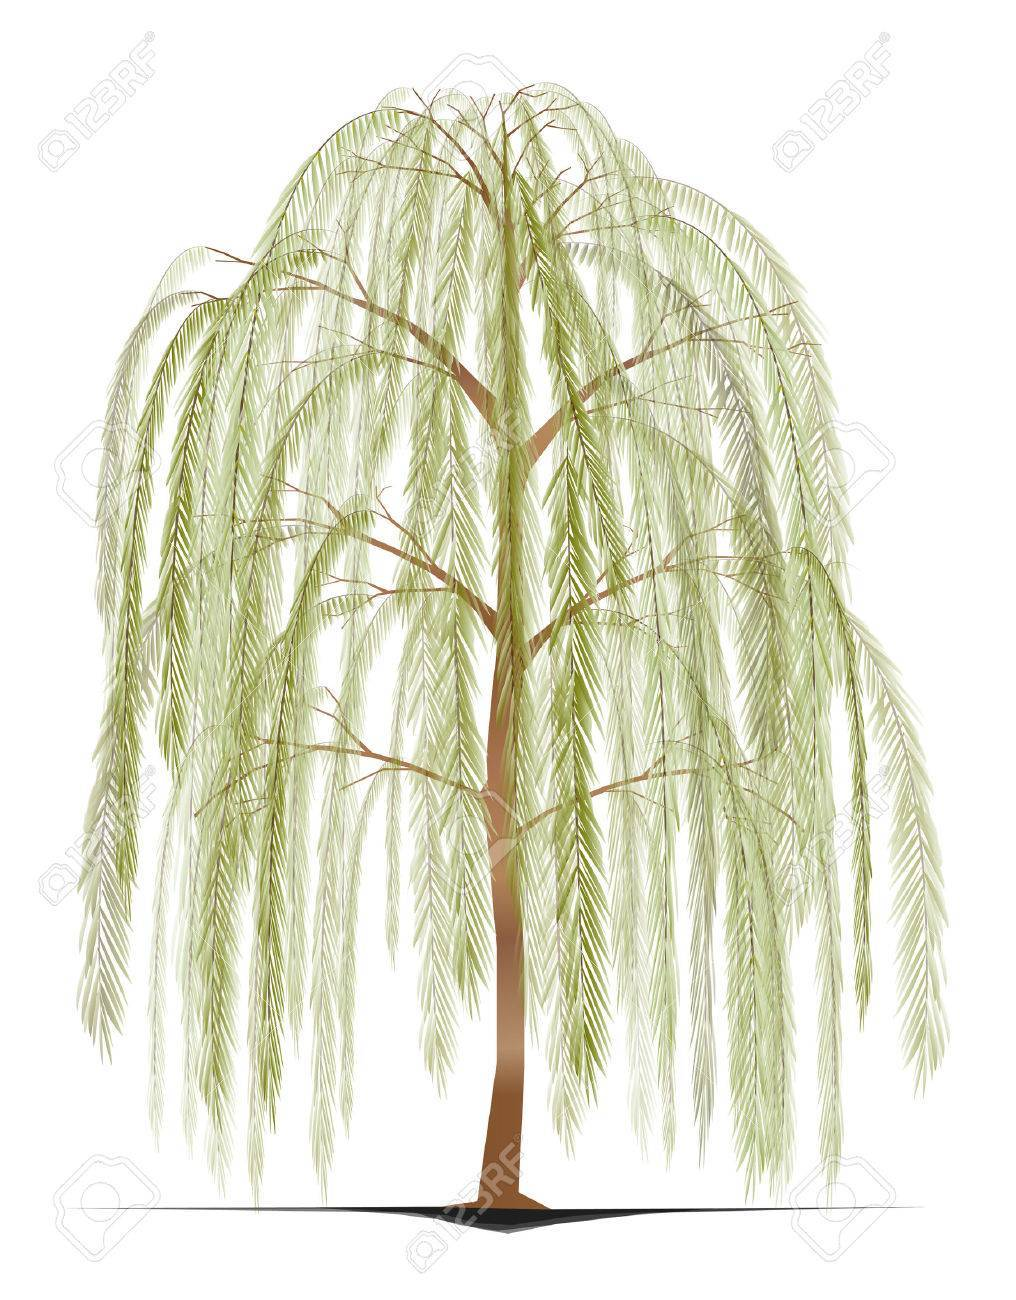 Weeping willow tree clipart 1 » Clipart Portal.